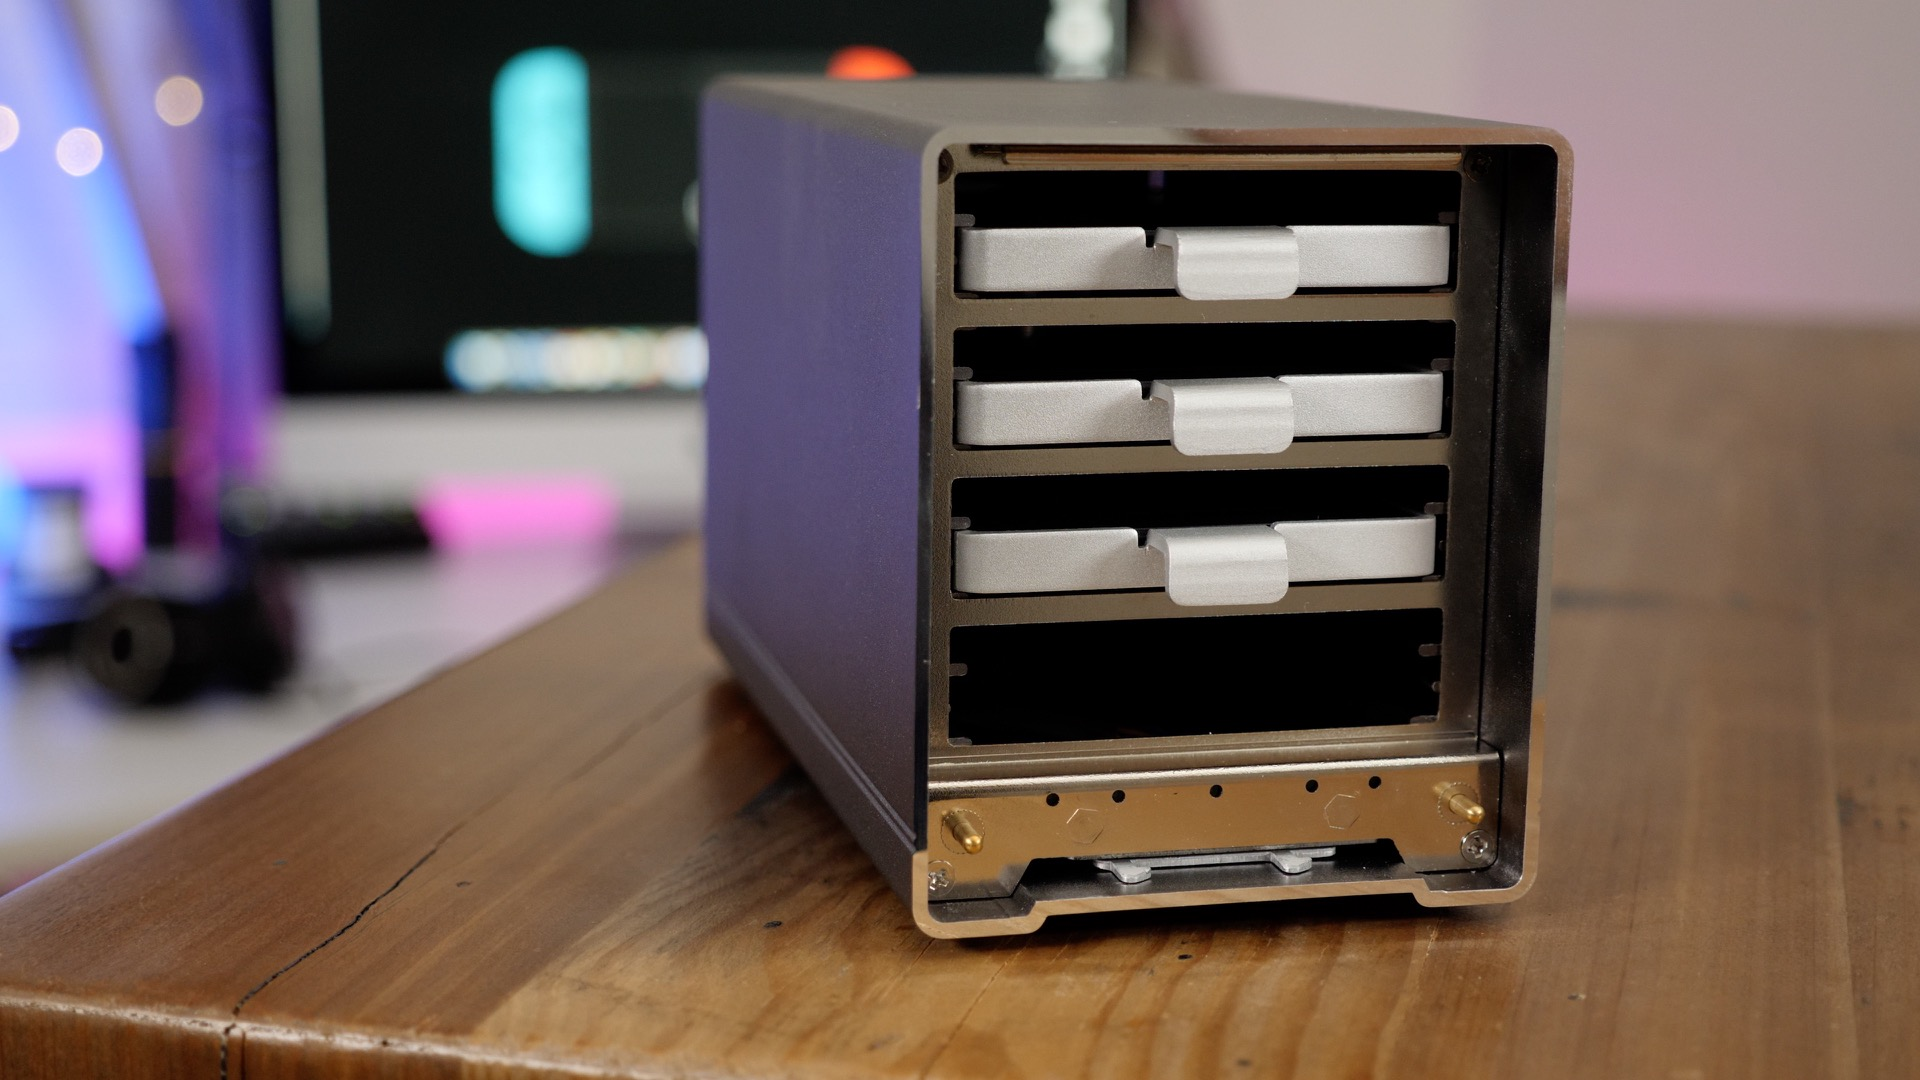 Four drive bays support four SSDs or four HDDs